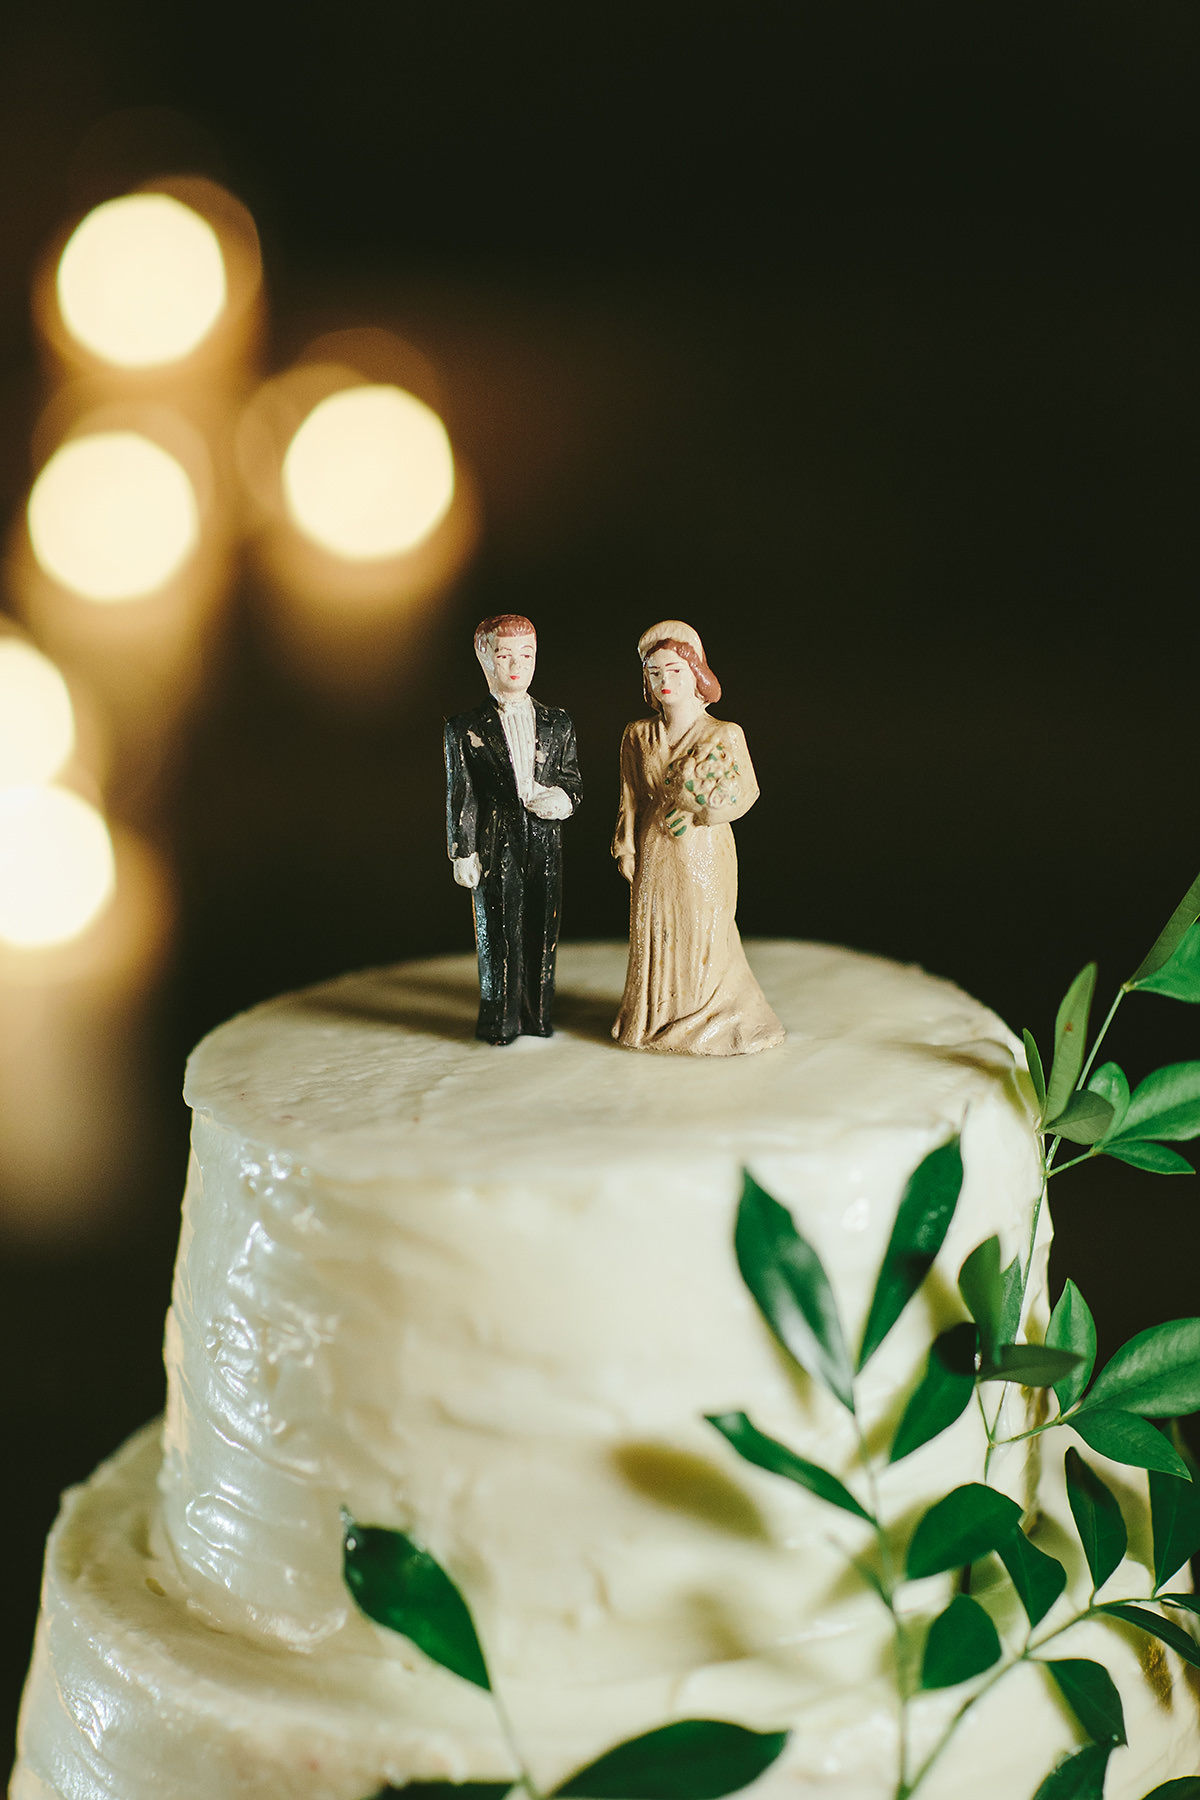 sarah daniel wedding cake bride and groom topper